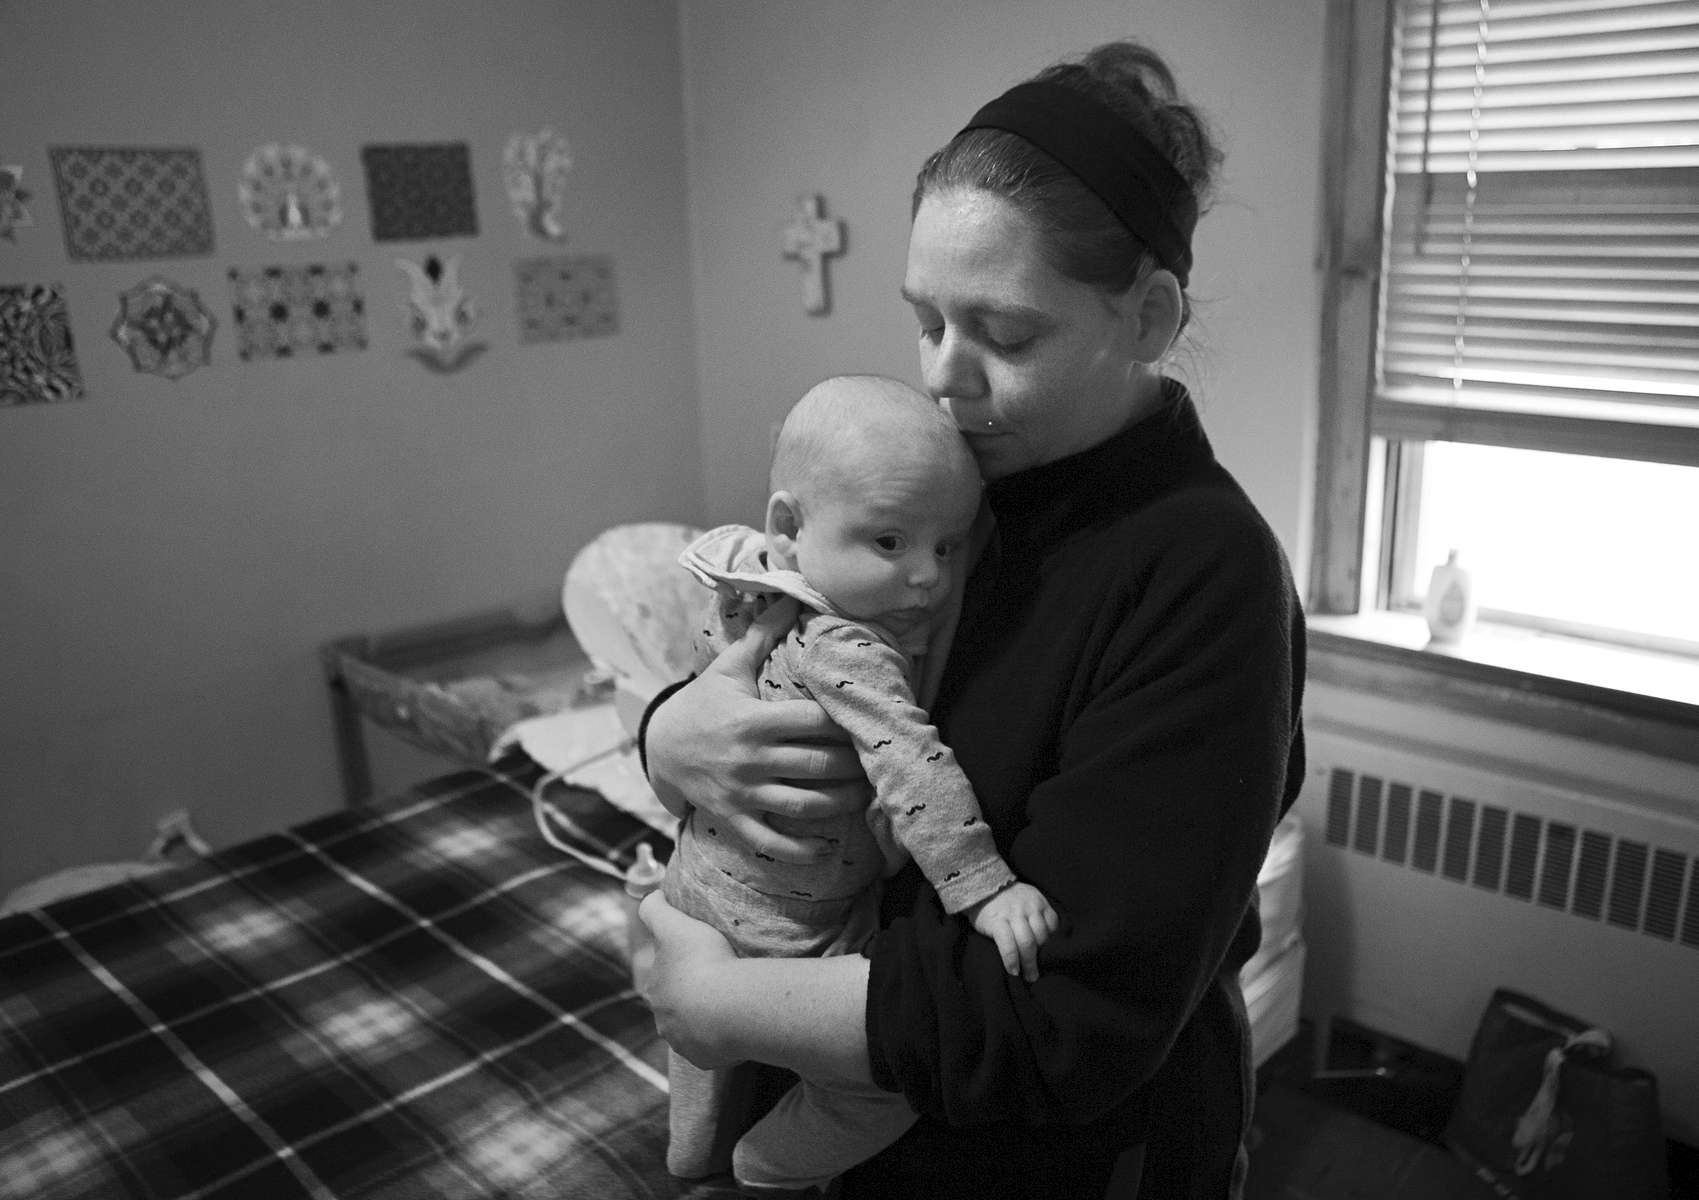 Camden, 4 months, is snuggled by his mother Amanda Davis in their private room at a Queen of Peace Center maternity home in the College Hill neighborhood of St. Louis on Thursday, Feb. 23, 2017. Davis, a recovering heroin addict, entered the Queen of Peace program to help her kick her heroin addiction when she found out she was pregnant with Camden. She is taking weekly drug tests now to prove that she is clean and will soon be moving into her own apartment. Her hope is after proving she is clean and moving into her own apartment she'll be able to regain custody of her other children that were taken away by the state when she was using drugs.